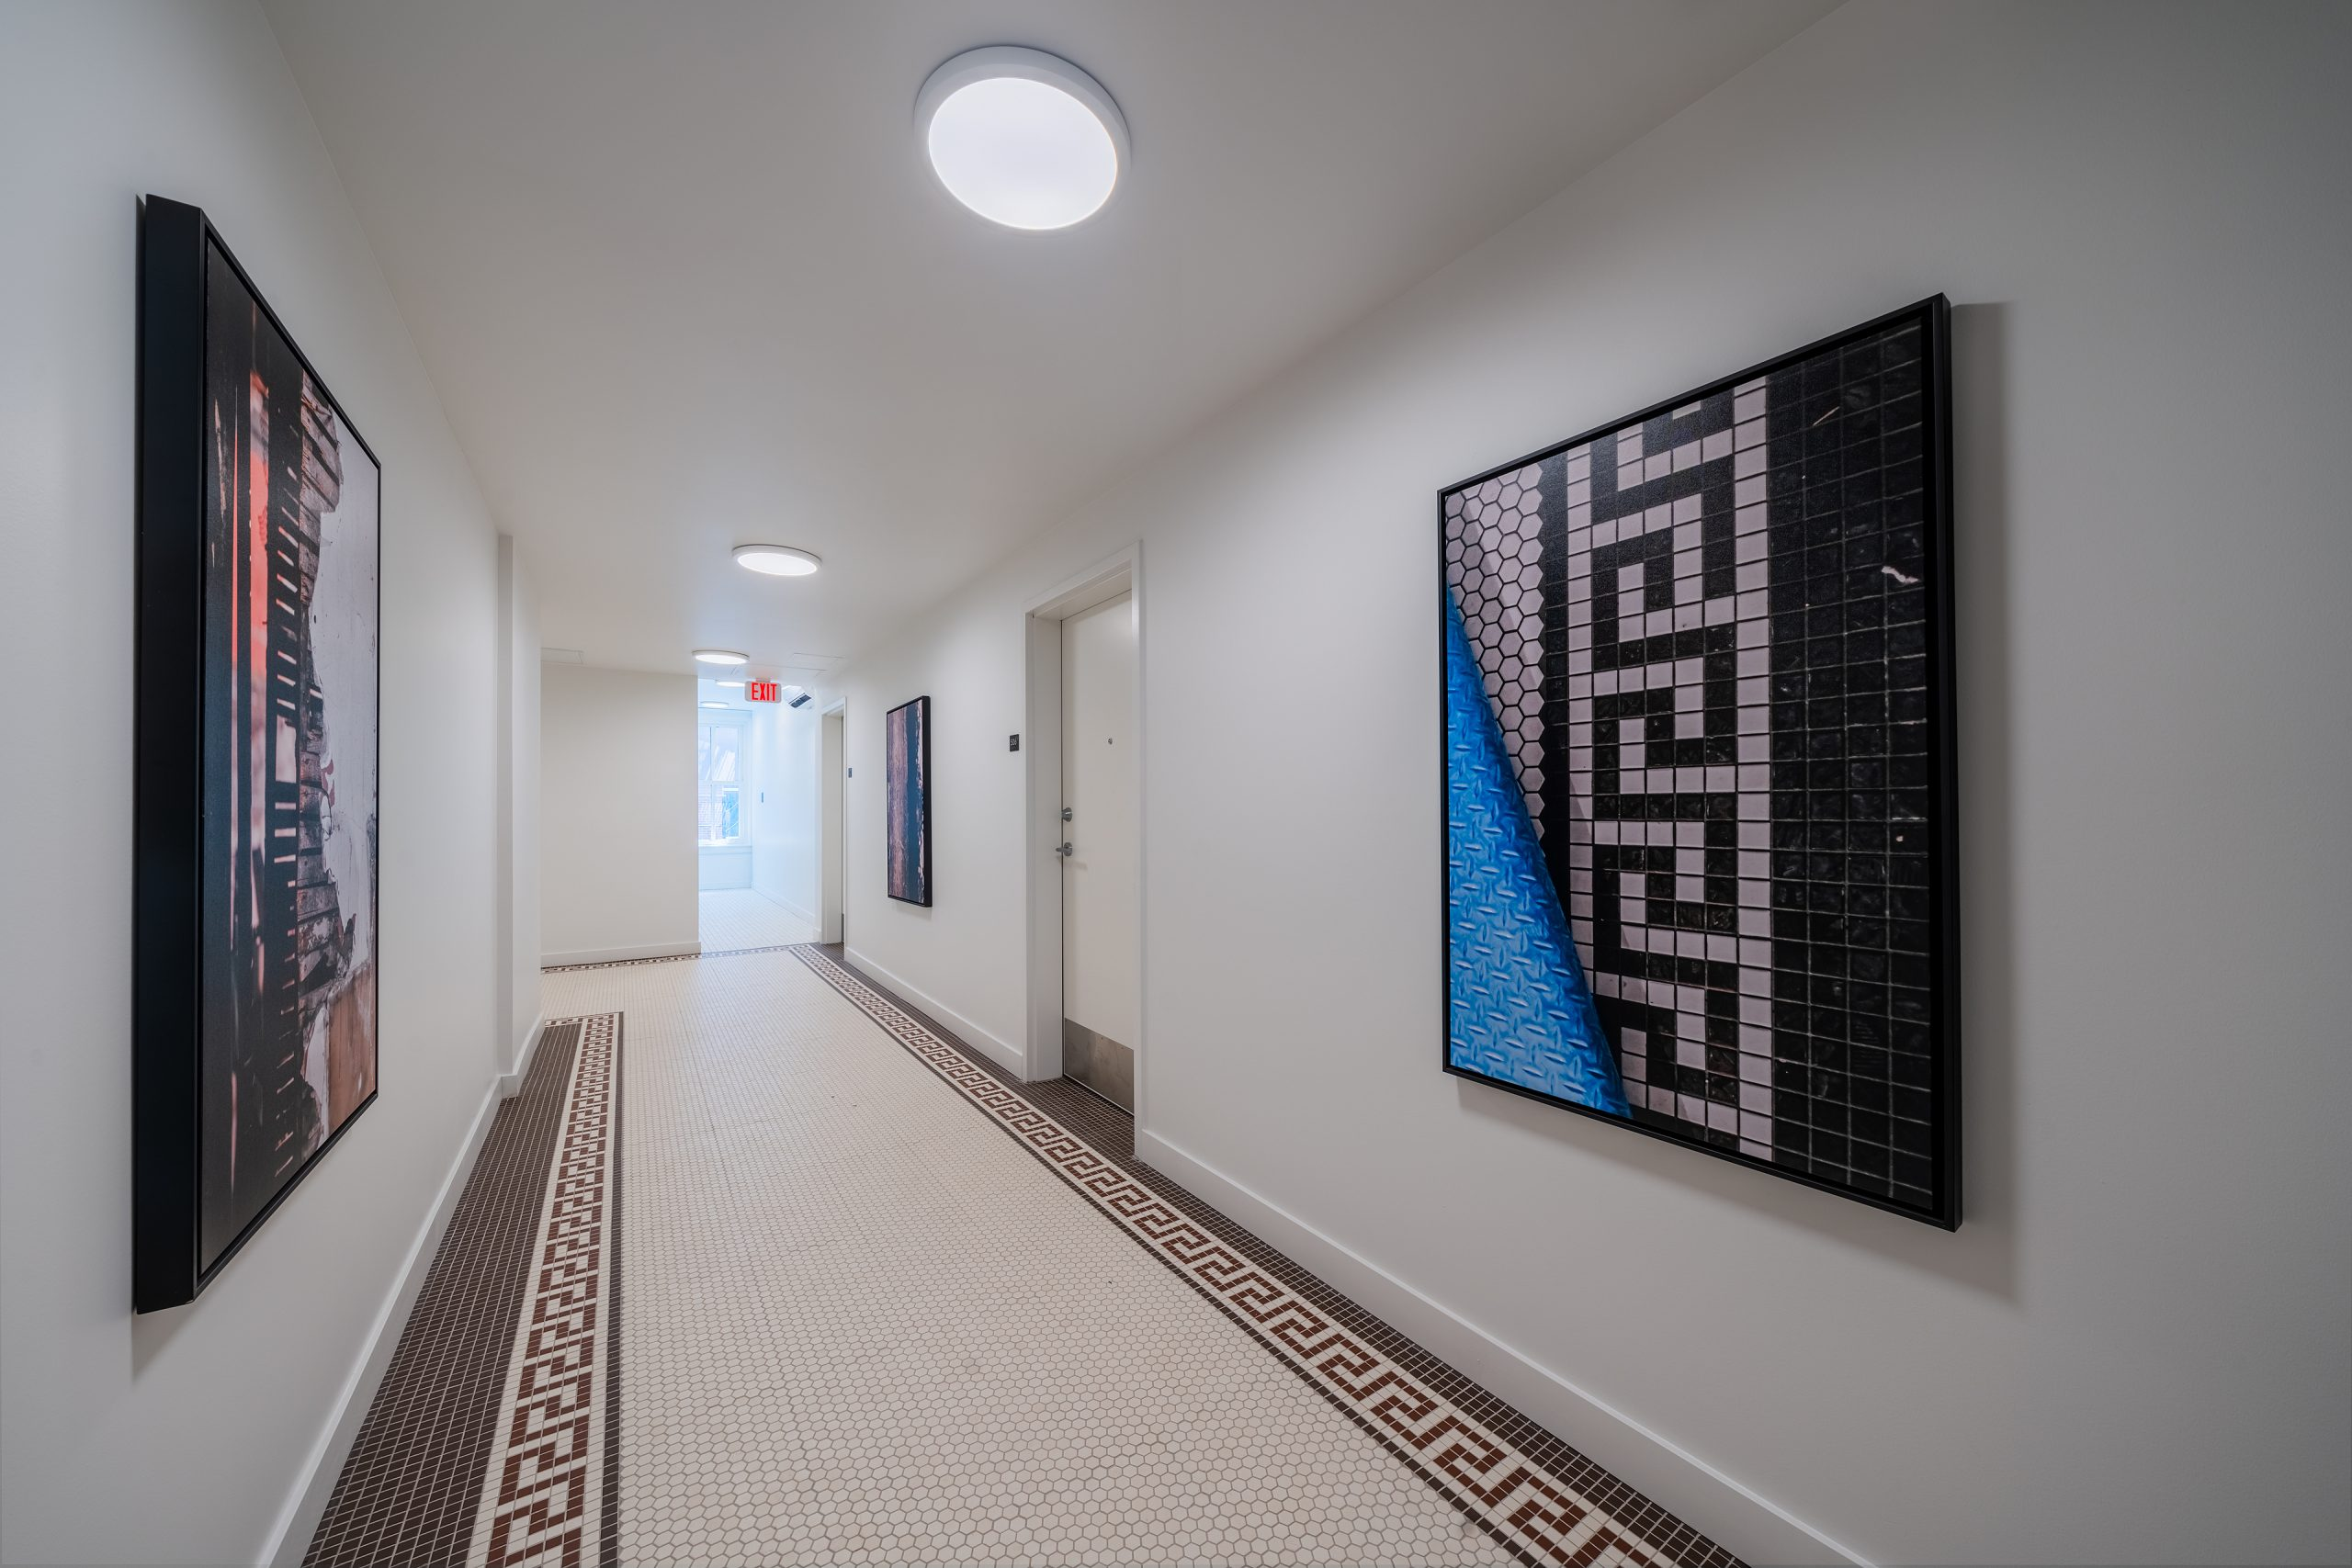 Interior hallway in the Edna Griffin building displaying restored original tile in a Greek pattern with matching artwork on the wall